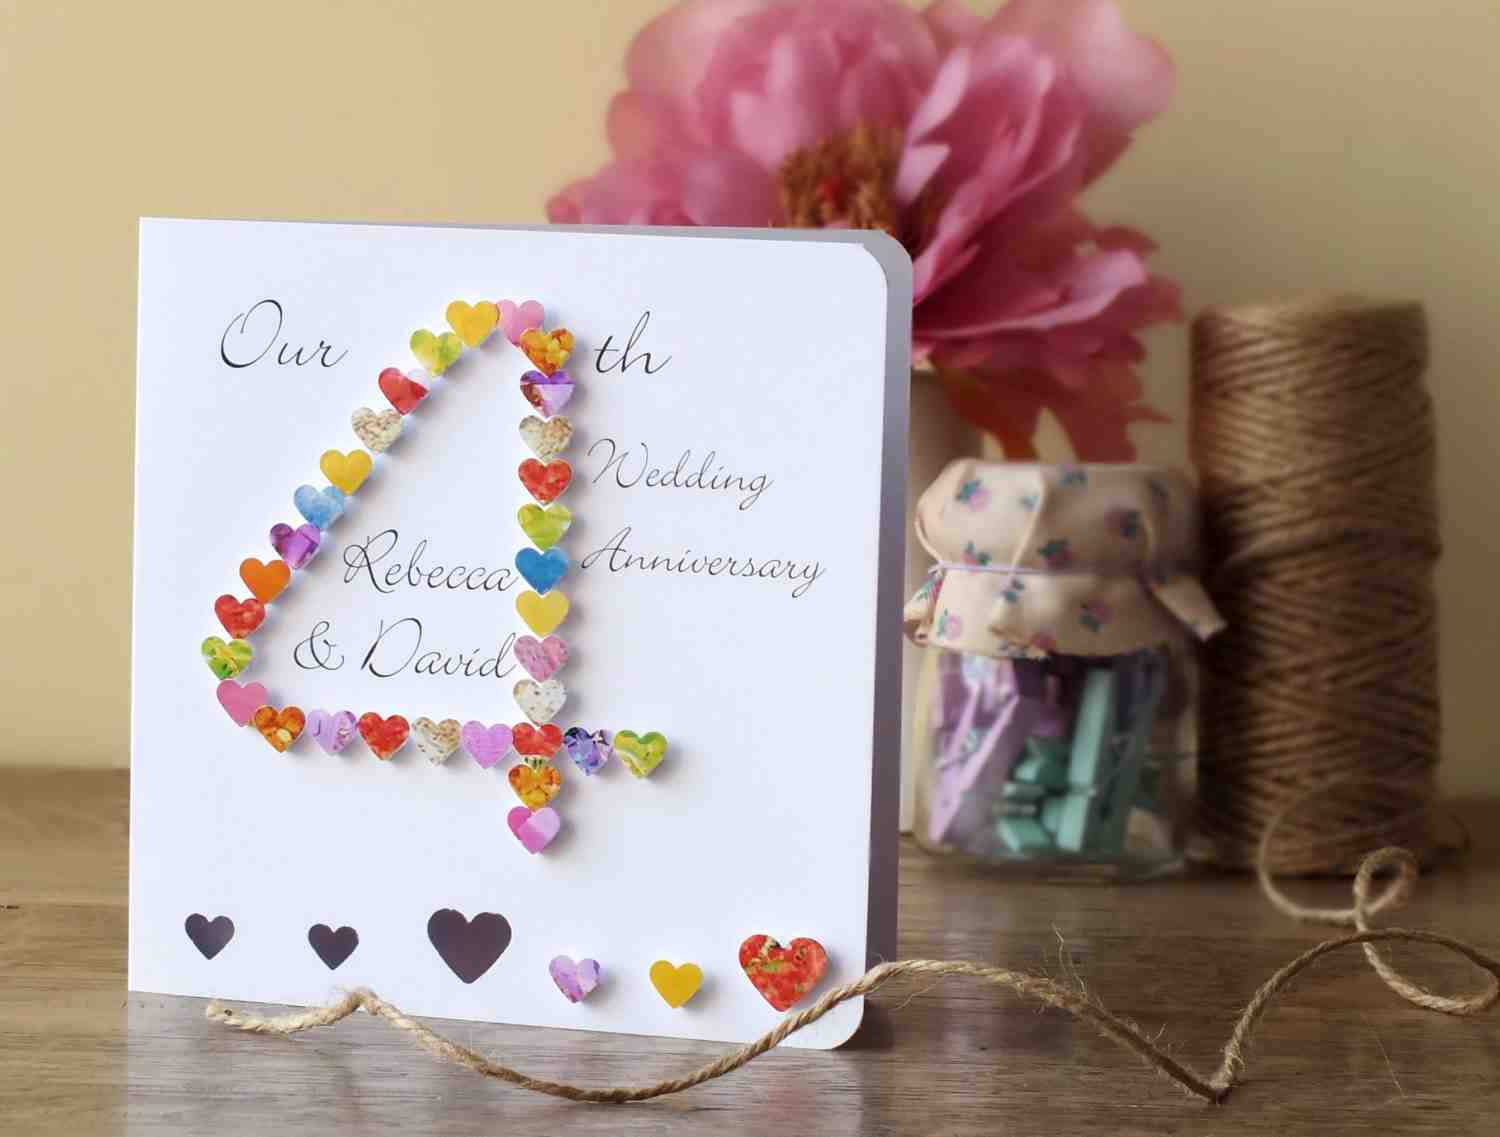 Best ideas about 4 Year Wedding Anniversary Gift Ideas . Save or Pin 4th Wedding Anniversary Gifts Wedding and Bridal Inspiration Now.